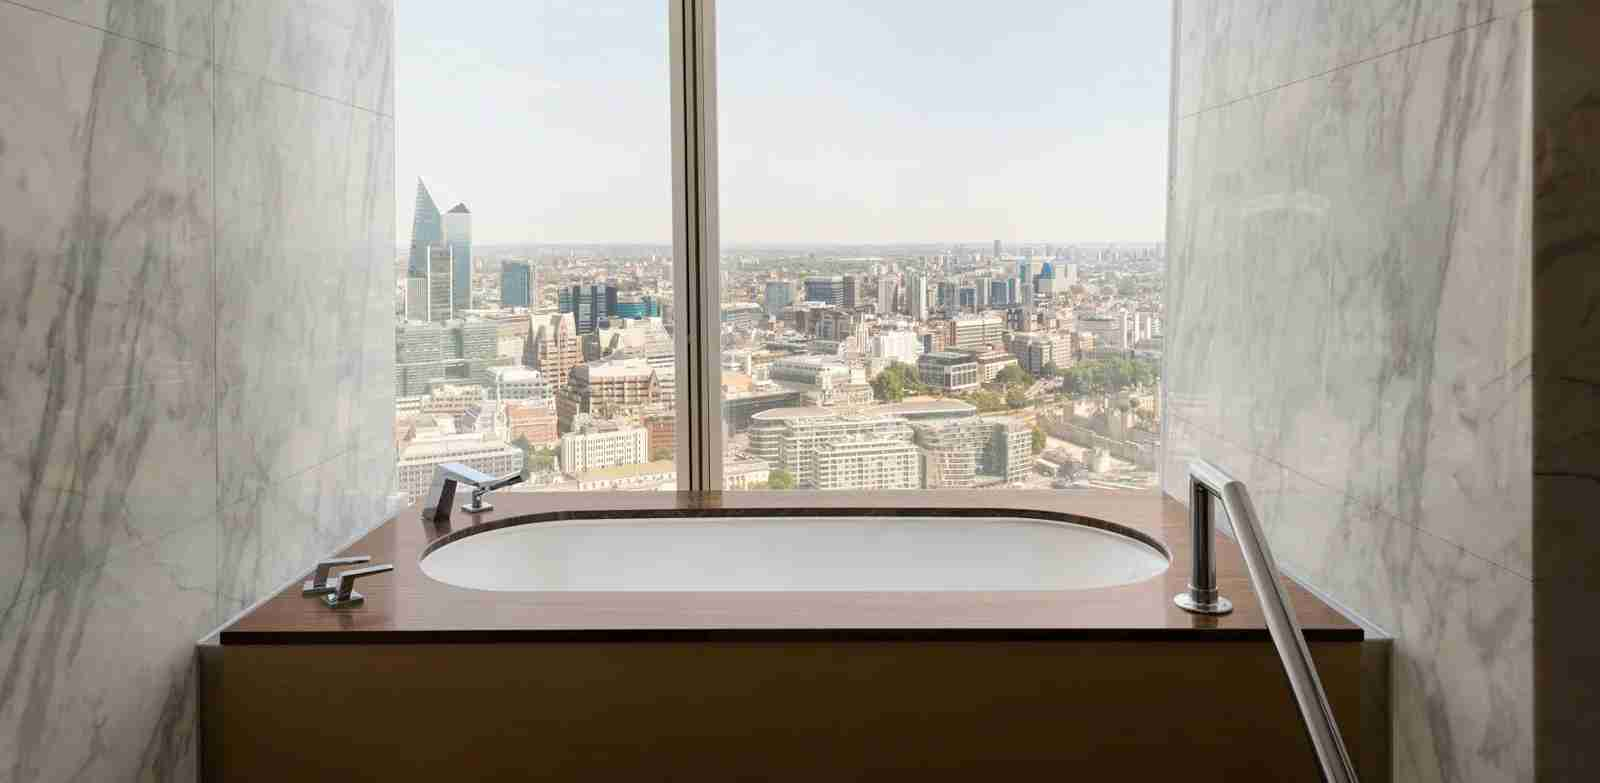 (Photo courtesy of the Shangri-La Hotel At The Shard London)